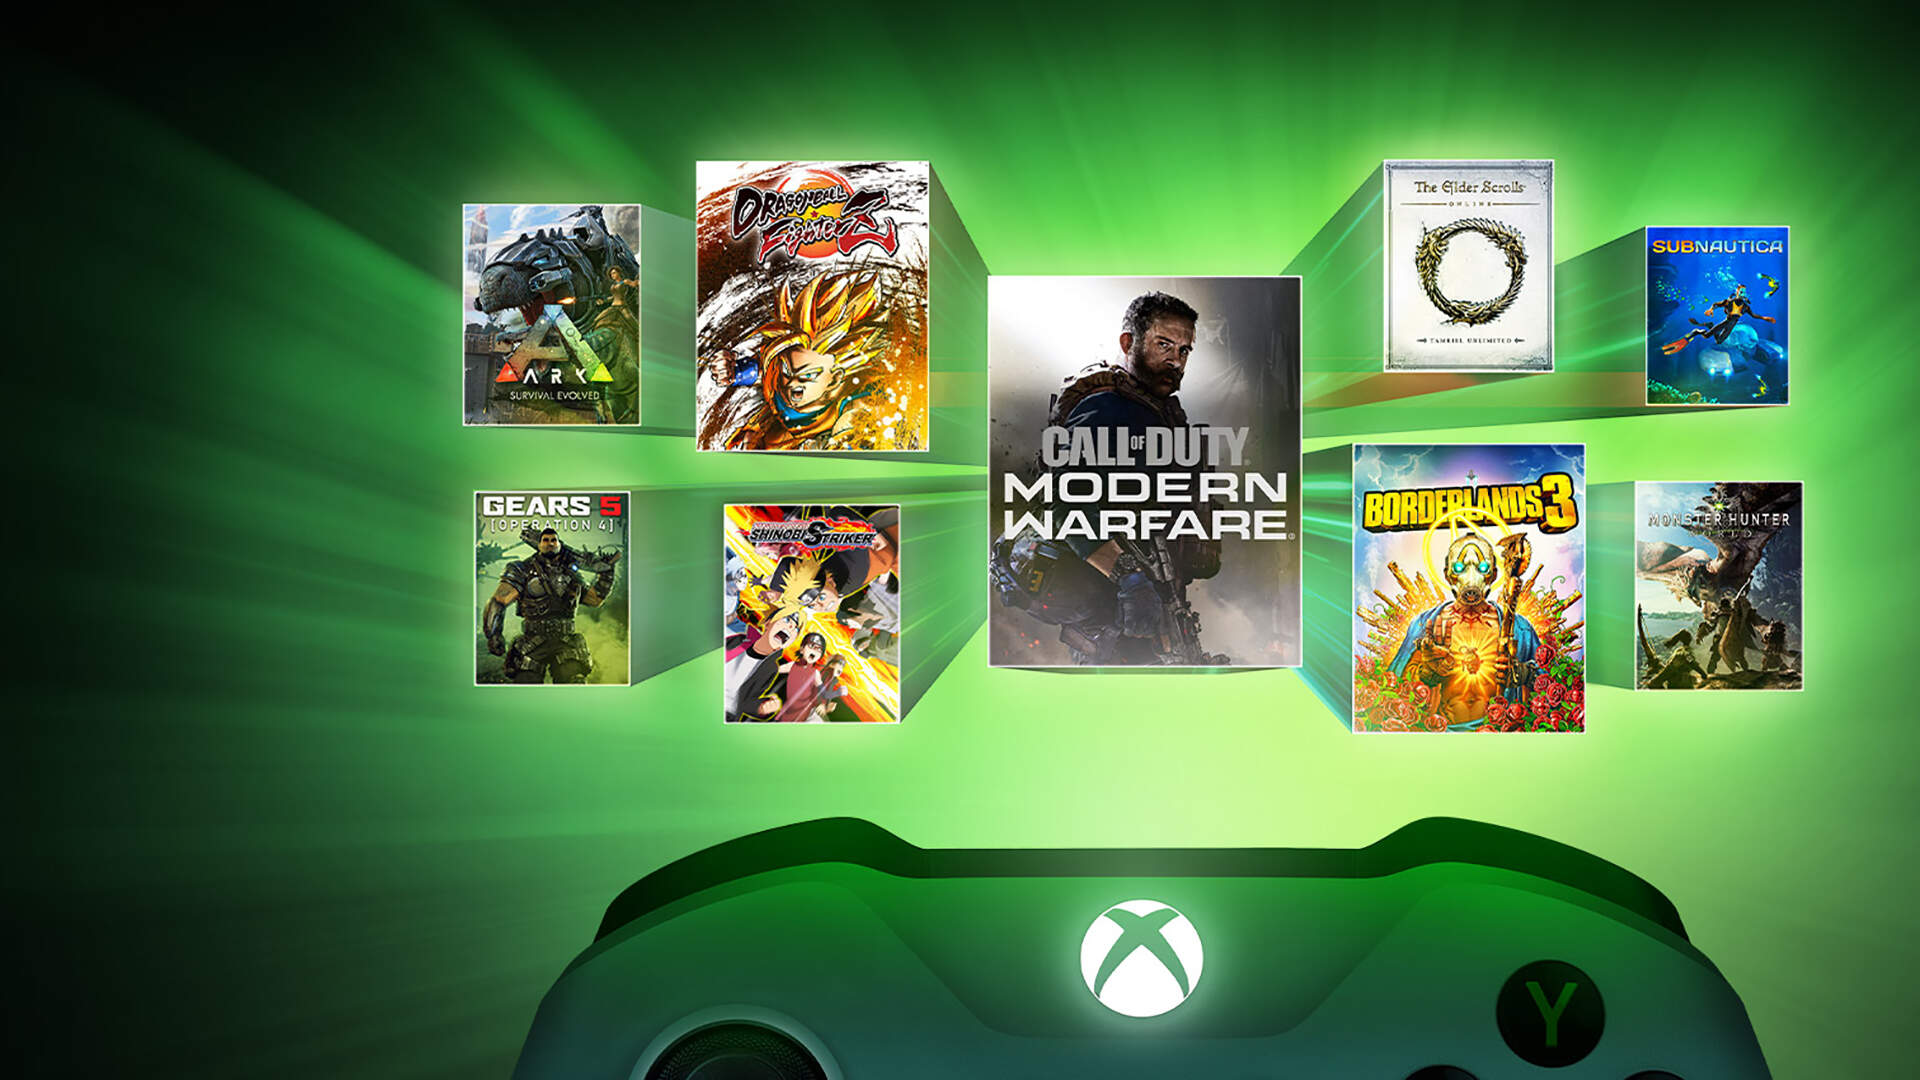 Xbox Offers Free Online Gaming This Weekend